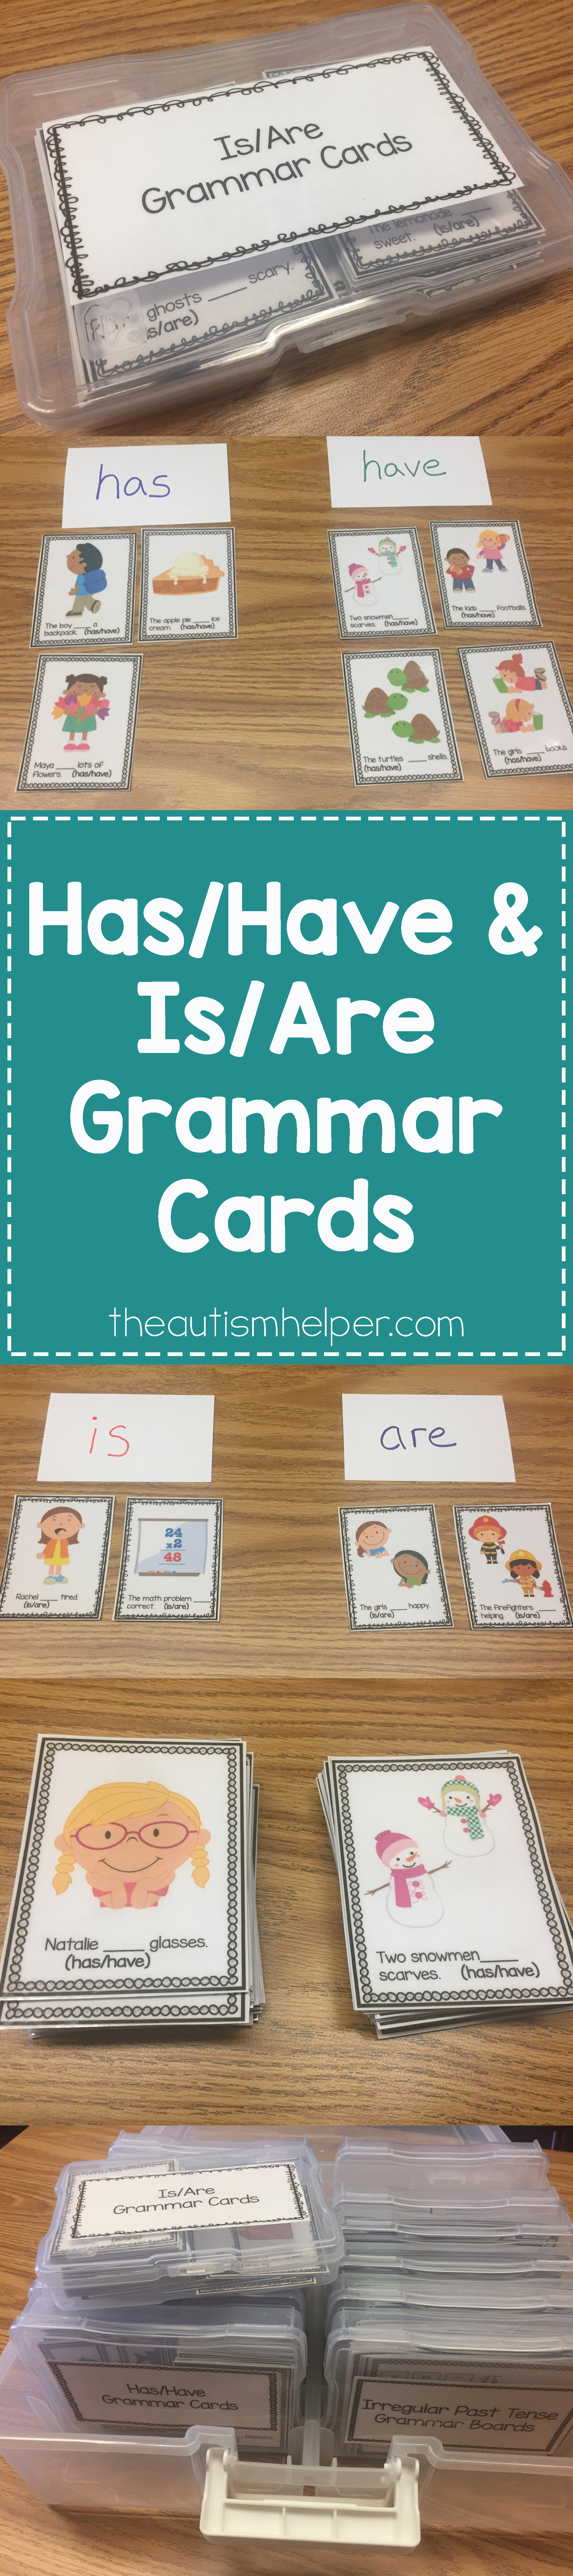 Grammar Time! Has/Have and Is/Are Grammar Cards | Students, Language ...